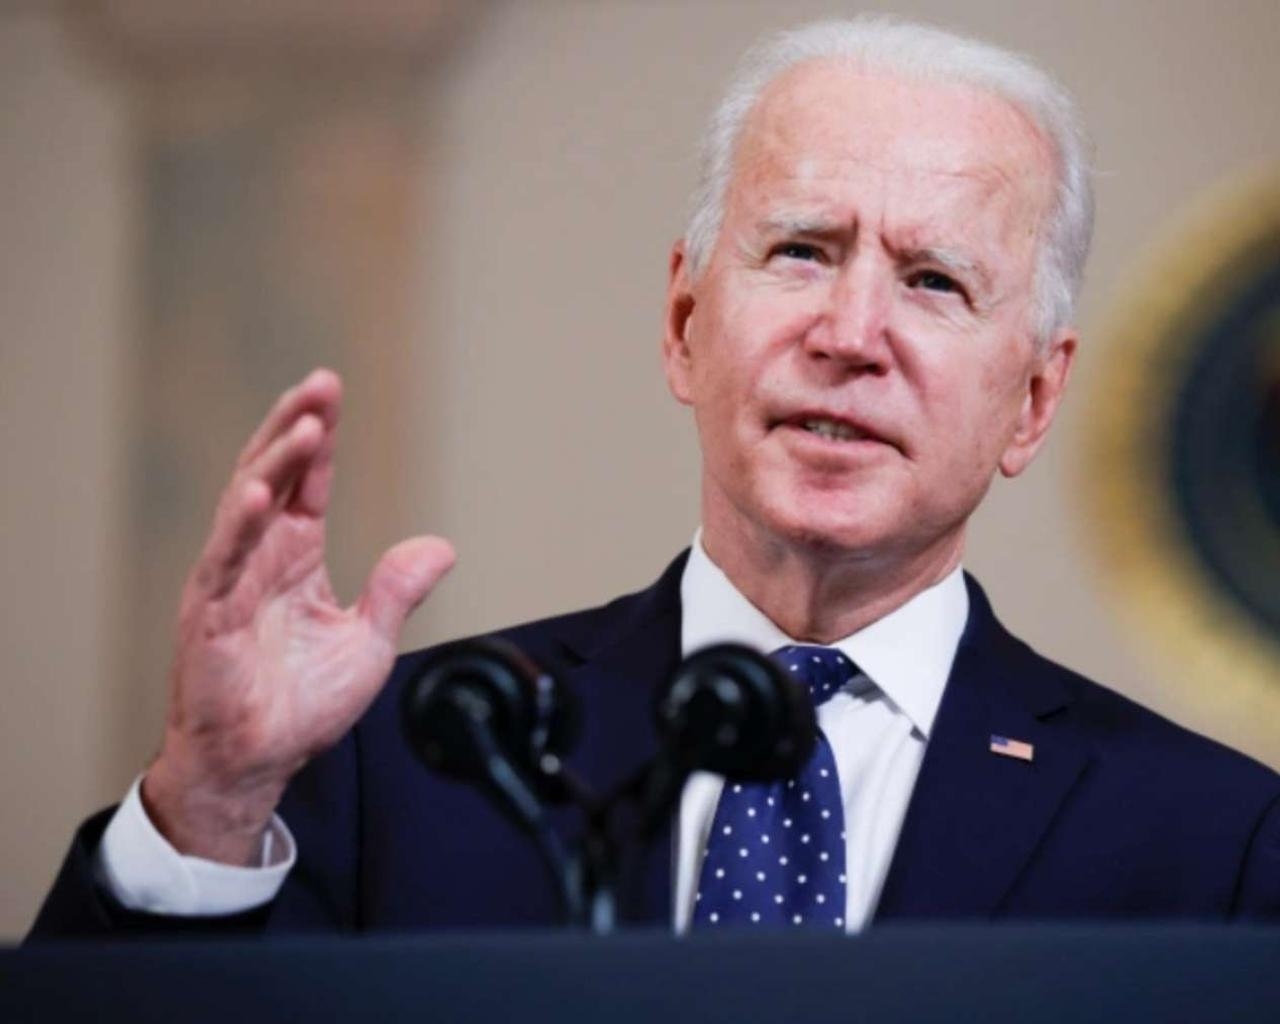 Joe Biden spoke about the verdict against the former cop who murdered George Floyd